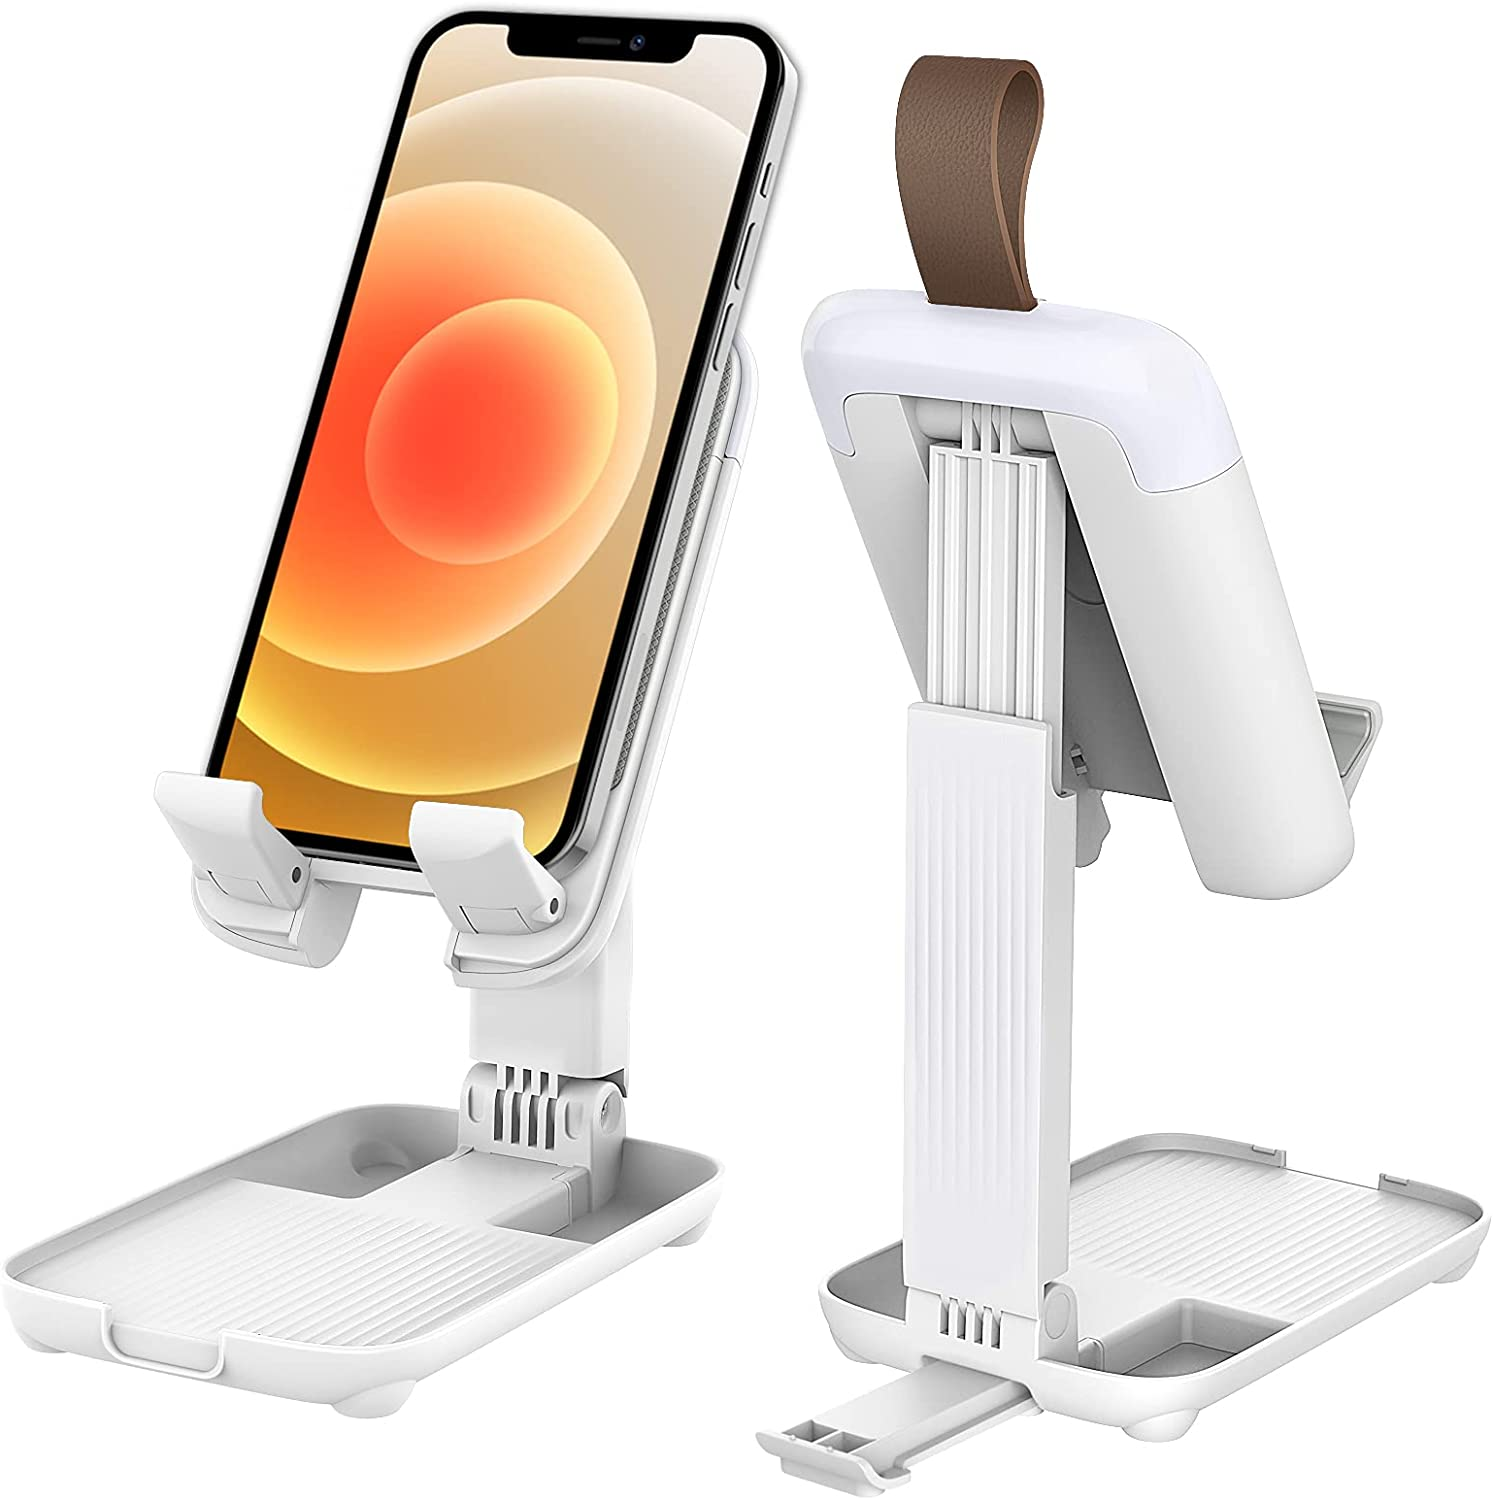 MoKo Adjustable Cell Phone Stand, Desk Phone Holder Dock Stand with Angle Height Adjustment, Compatible with iPhone 12/11 Pro Max SE, iPad Mini 5,Air 3 Galaxy S20,All Smartphone Tablet(4